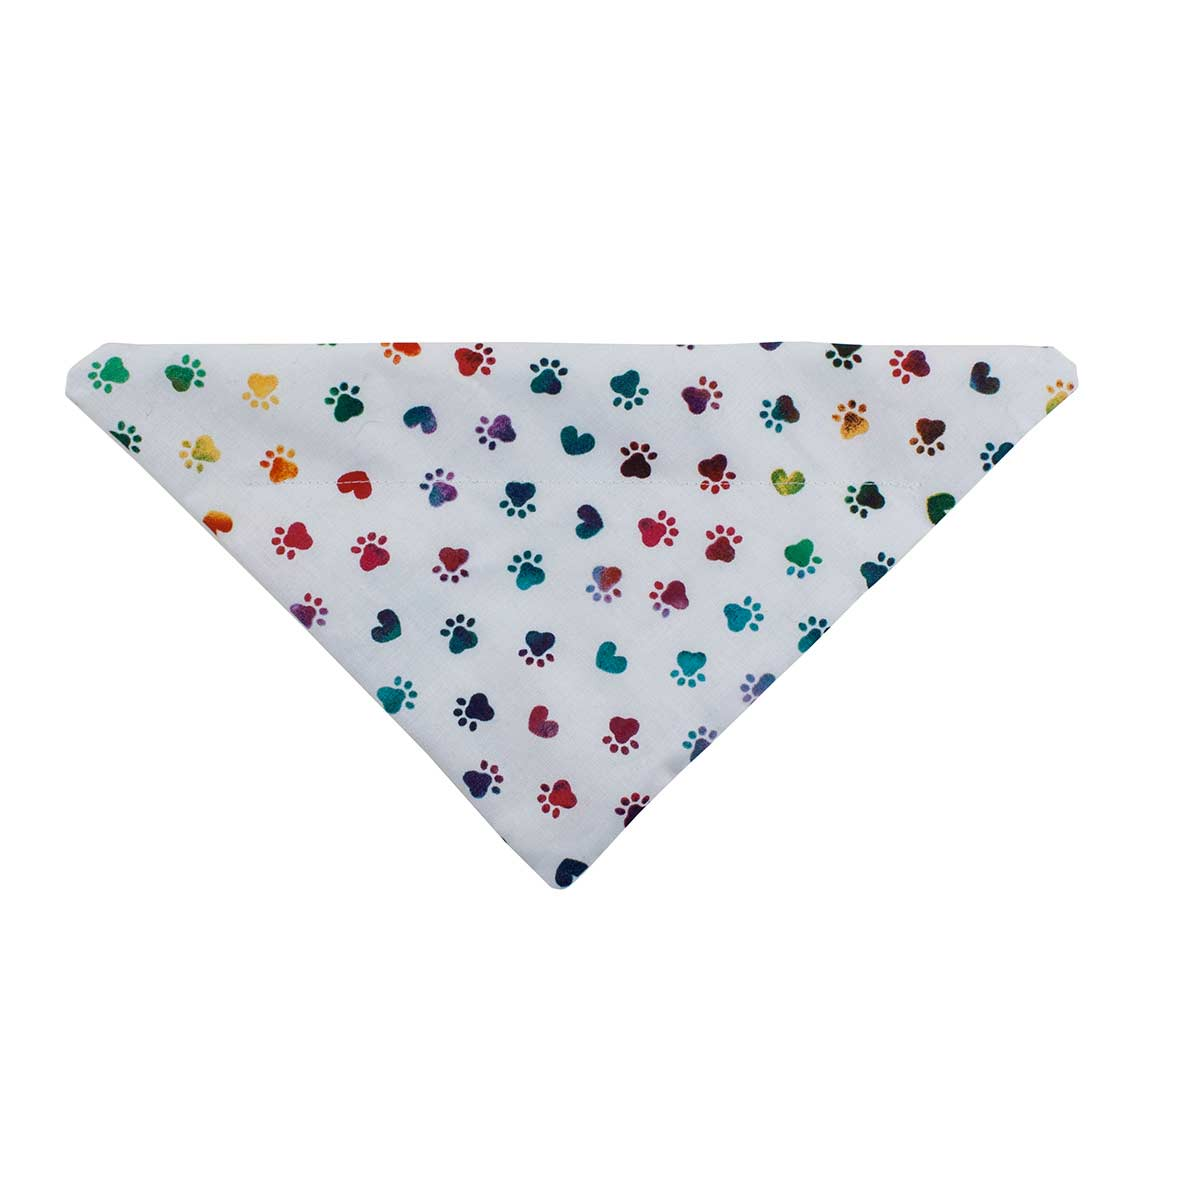 Medium Colorful Paws 11.5 inch Dog Collar Bandanna